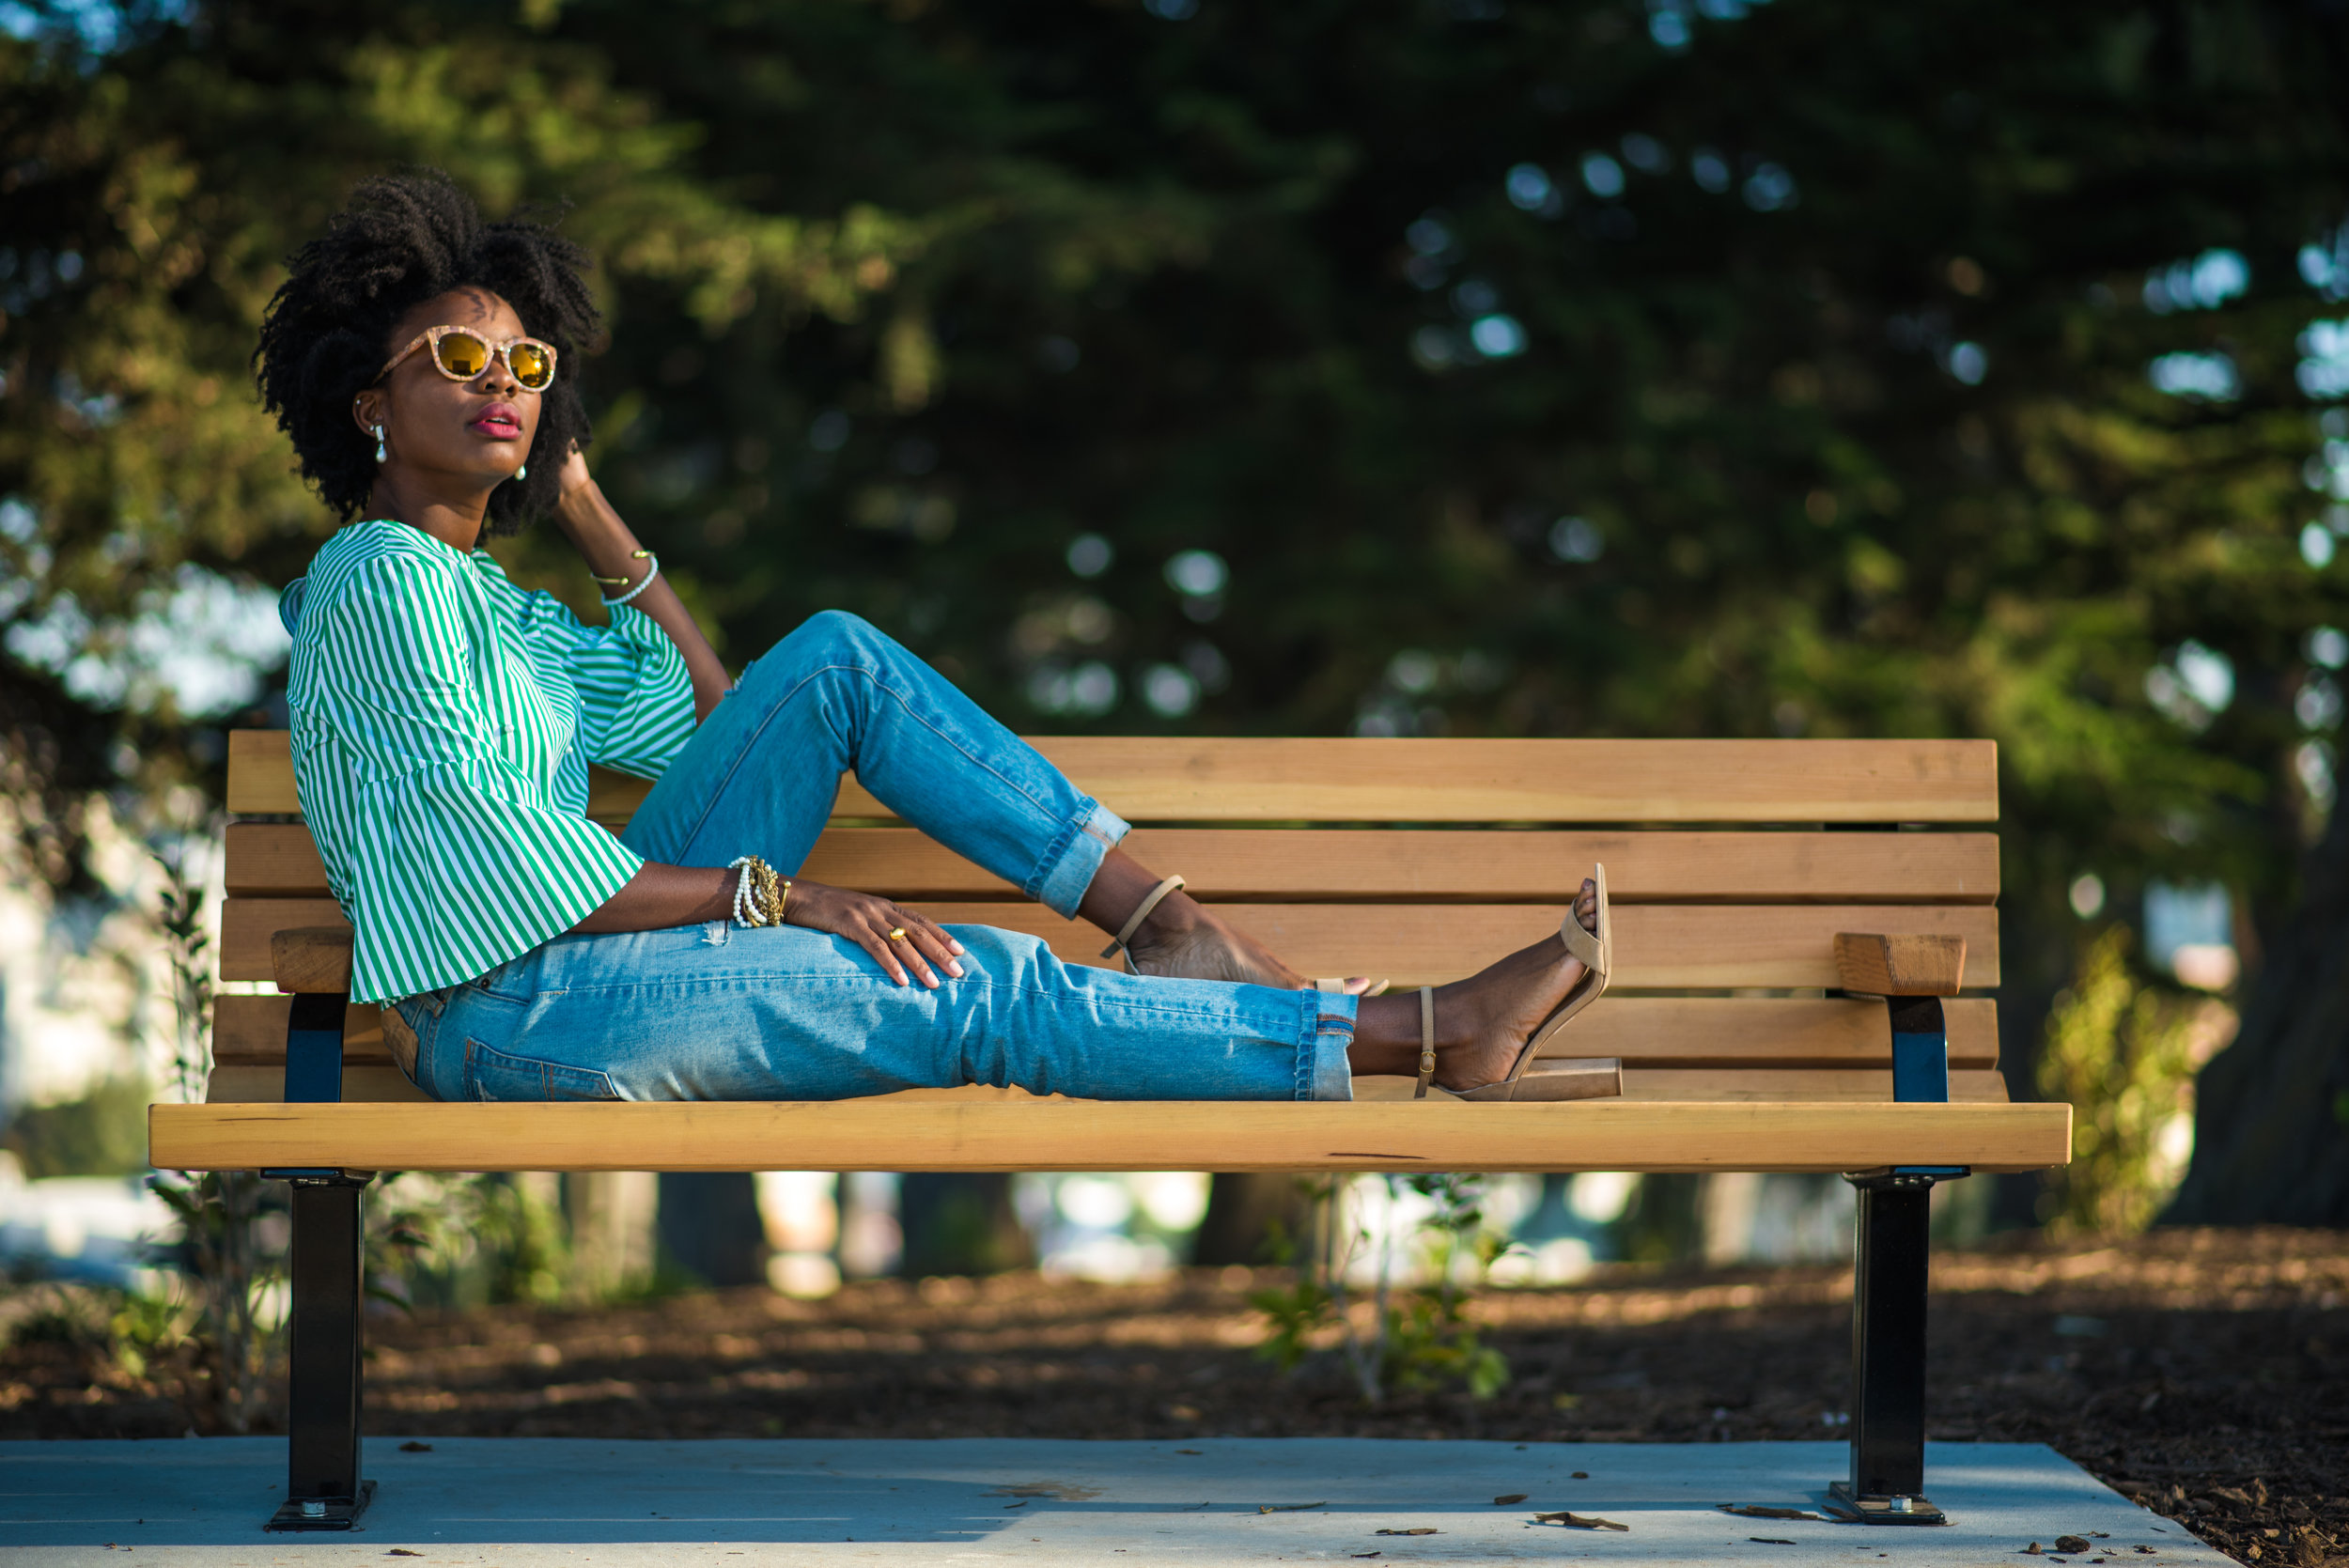 Shirt: Zara; Pants: Abercrombie & Fitch; Shoes: Report; Sunglasses: Dolce & Gabbana; Ring (right): Khiry; Wallet: Kate Spade